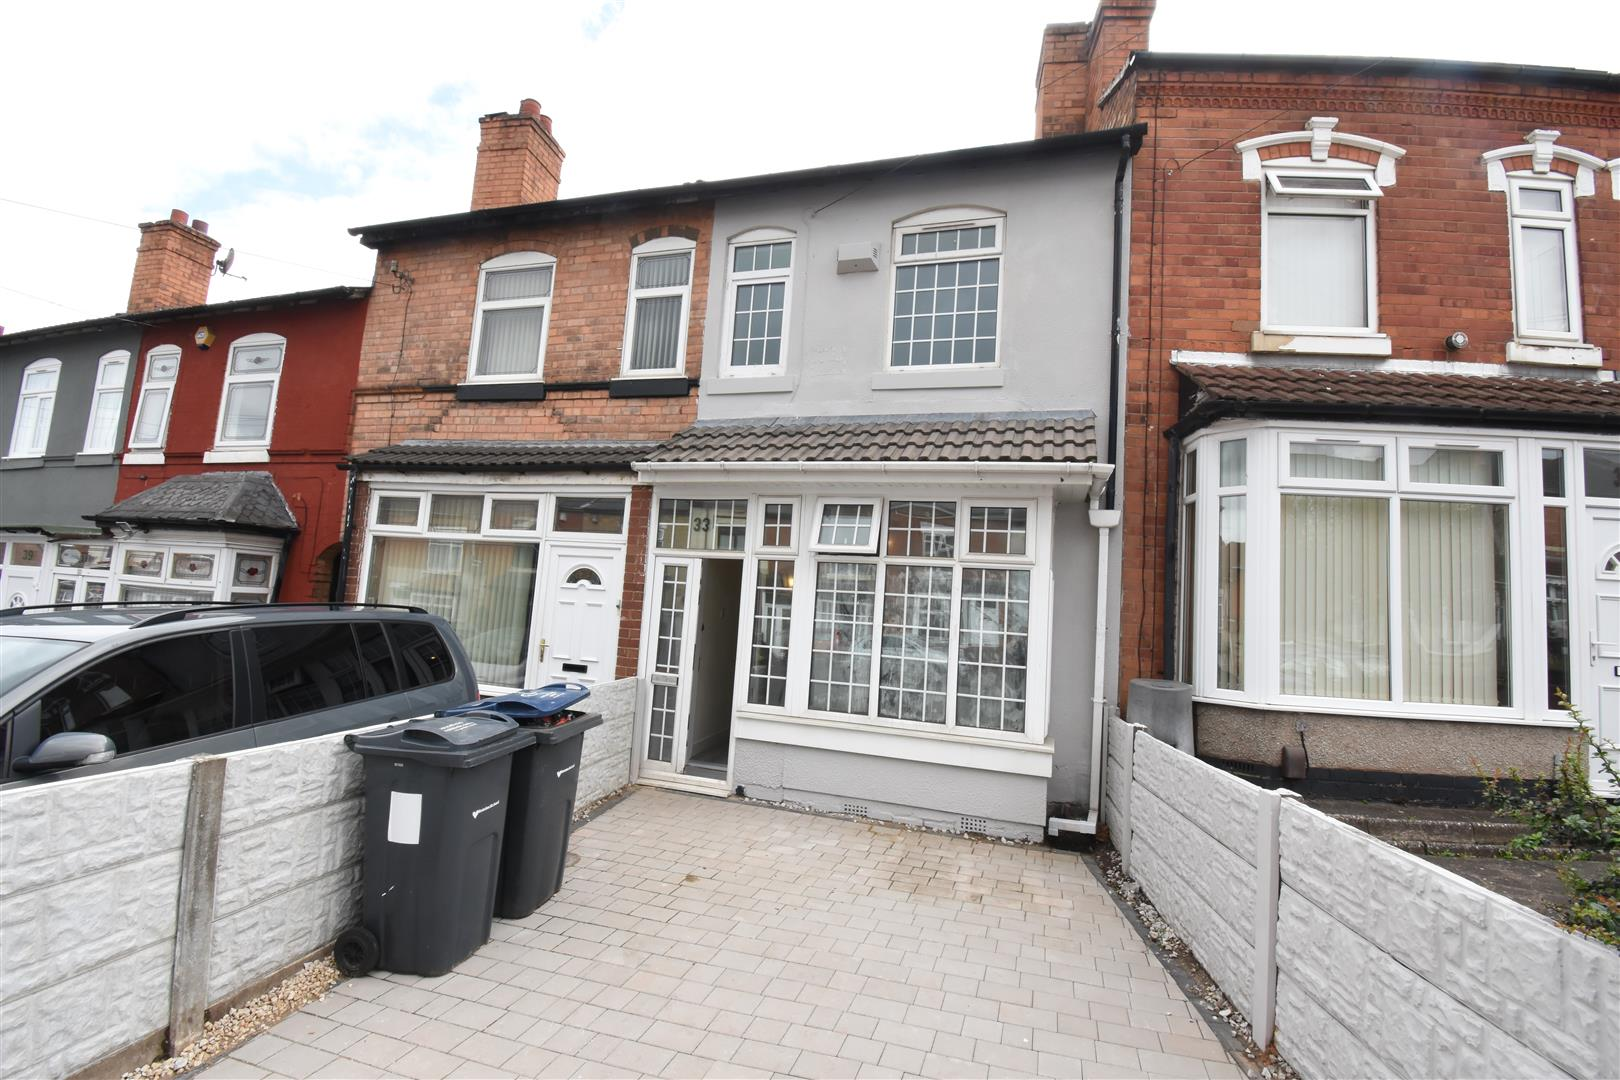 3 bed house for sale in Asquith Road, Ward End, Birmingham - Property Image 1